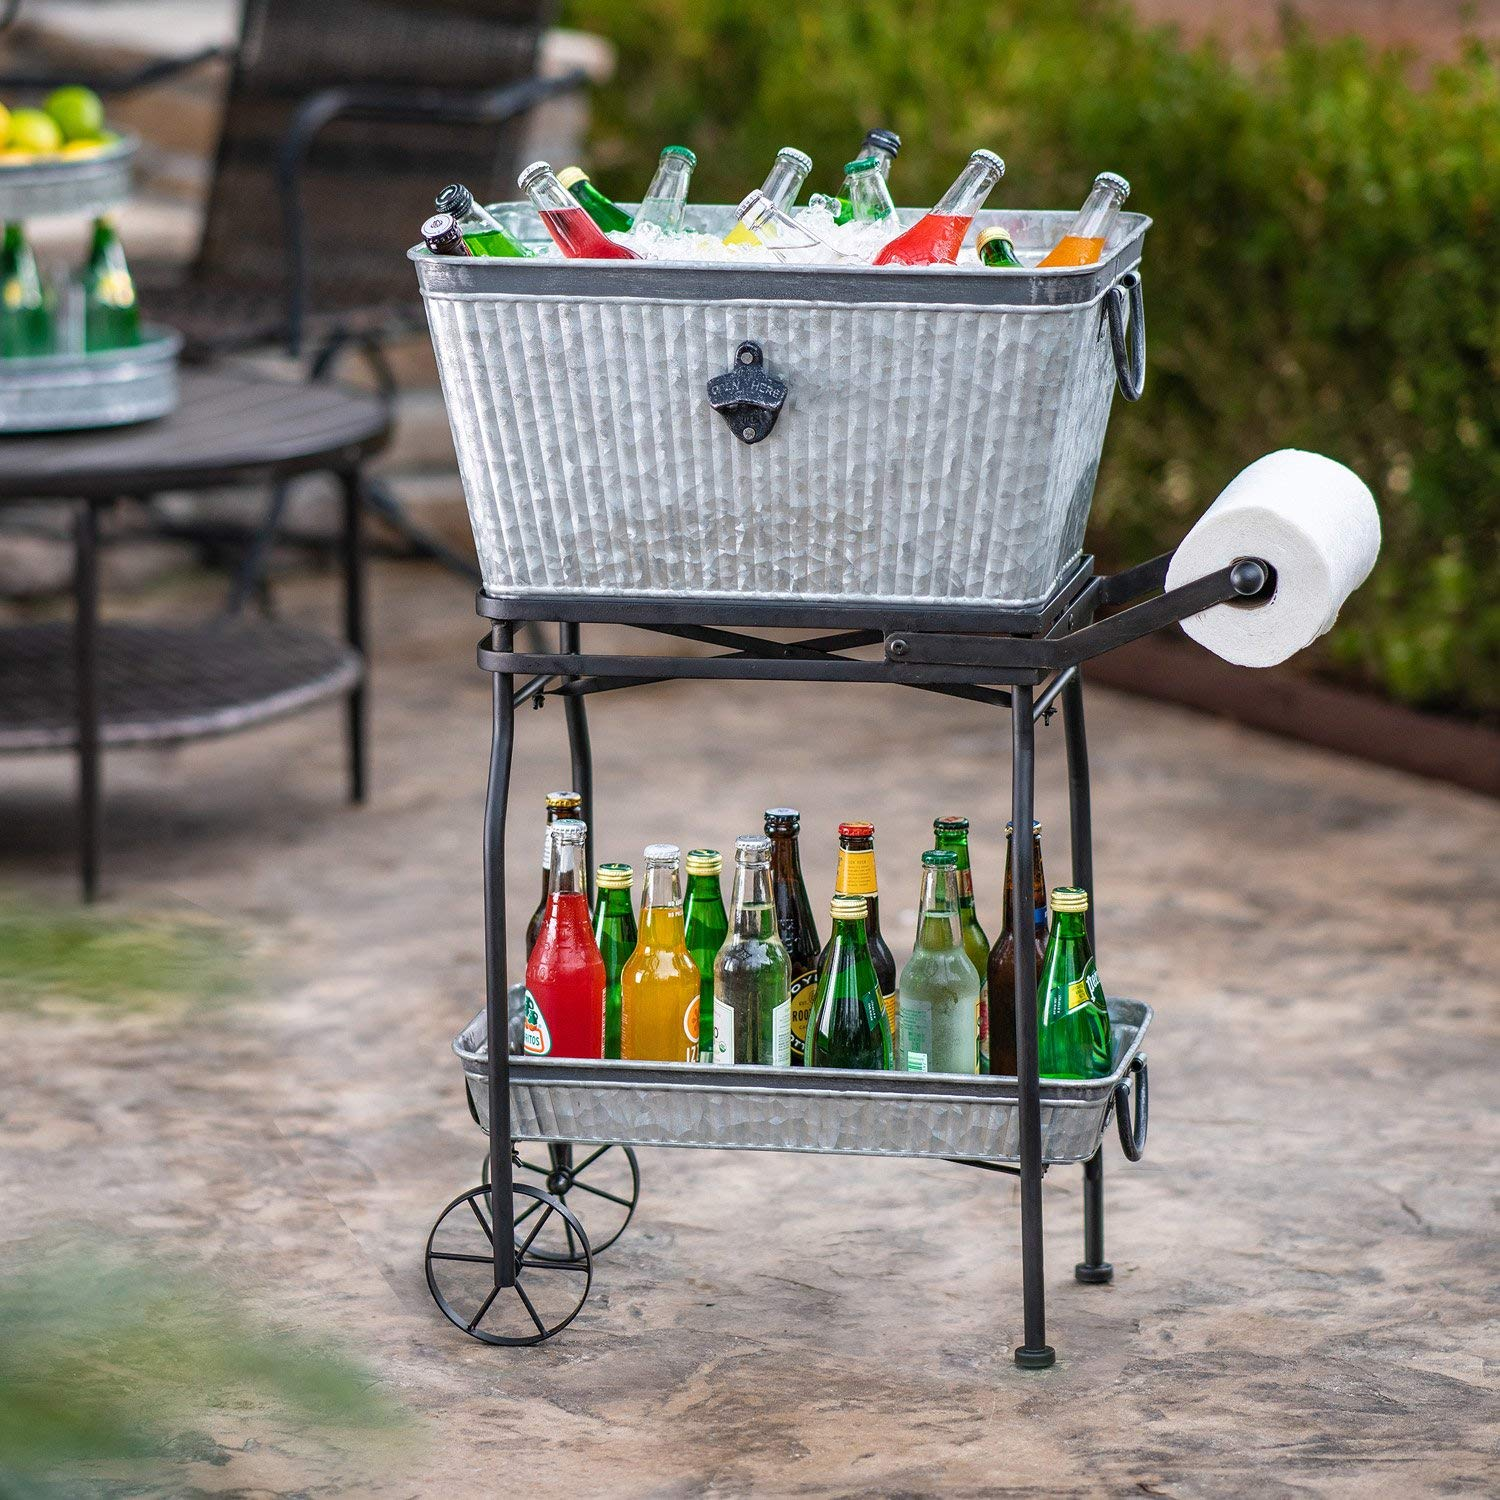 Libra Beverage Tub with Rolling Cart and Tray by Libra